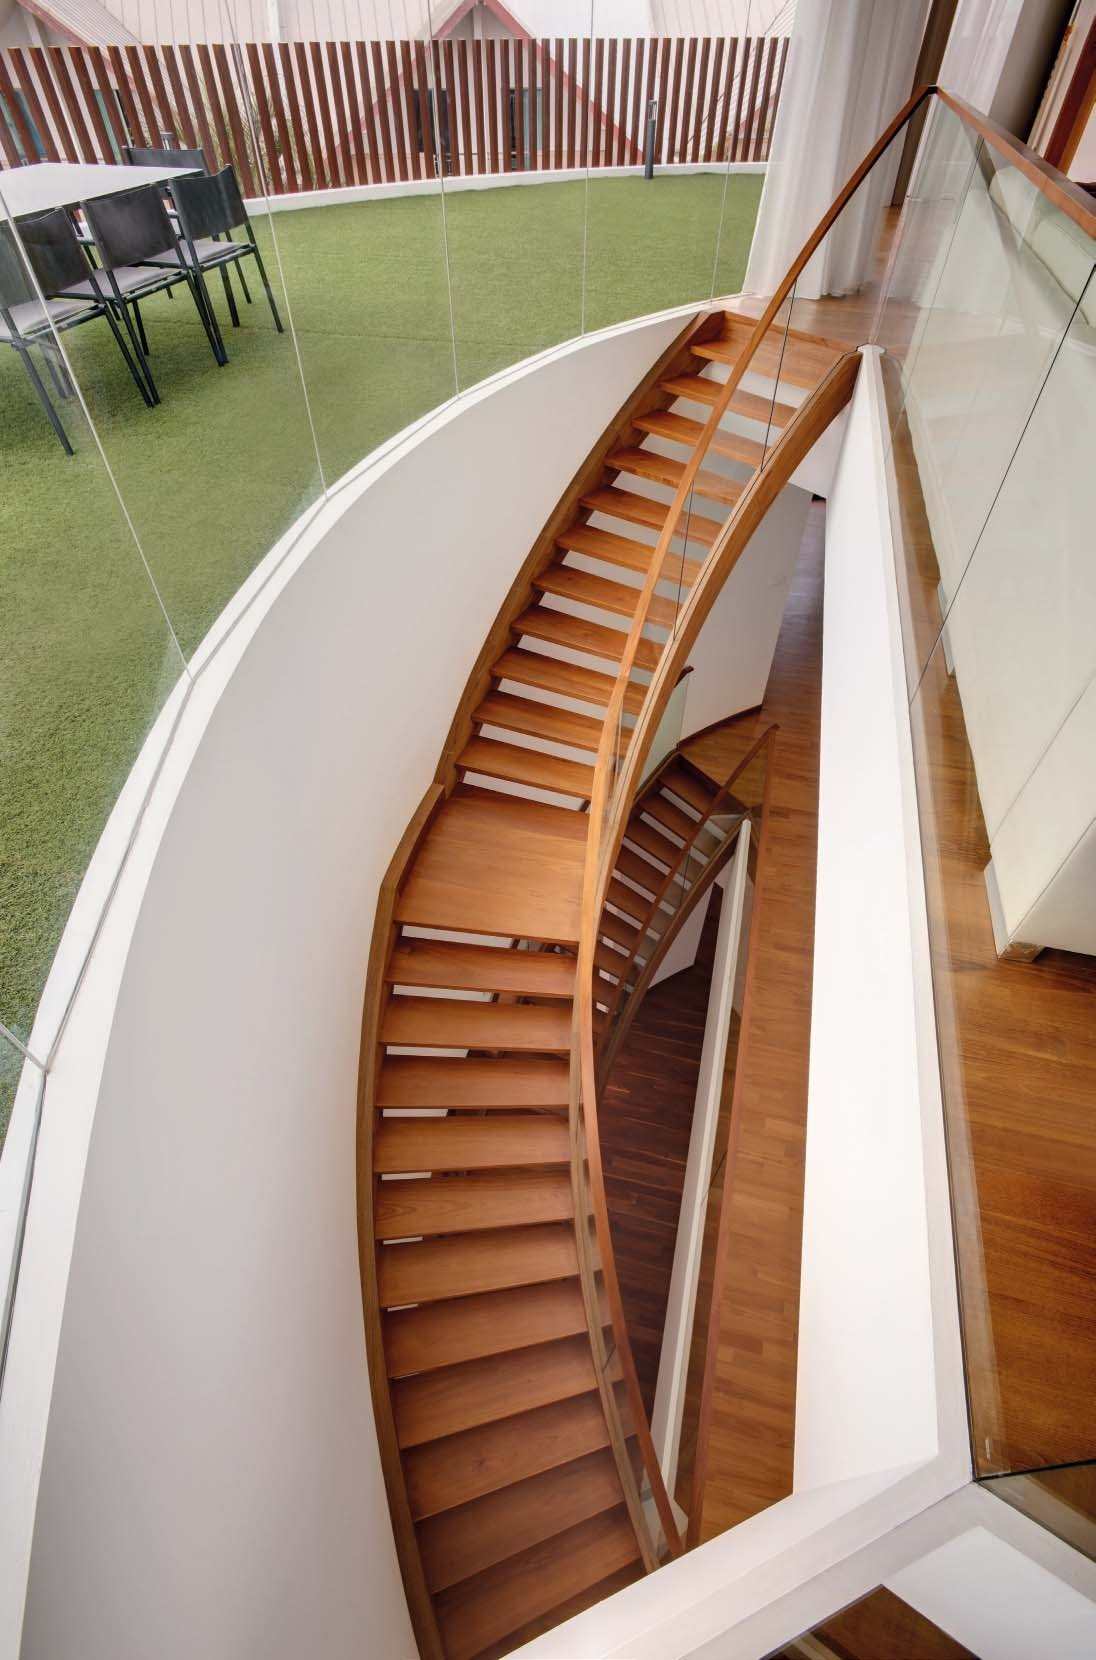 """The elegance, lightness and porosity of the curved staircase, constructed of mild steel and with timber veneer cladding, complements the """"floating"""" quality of  the house."""